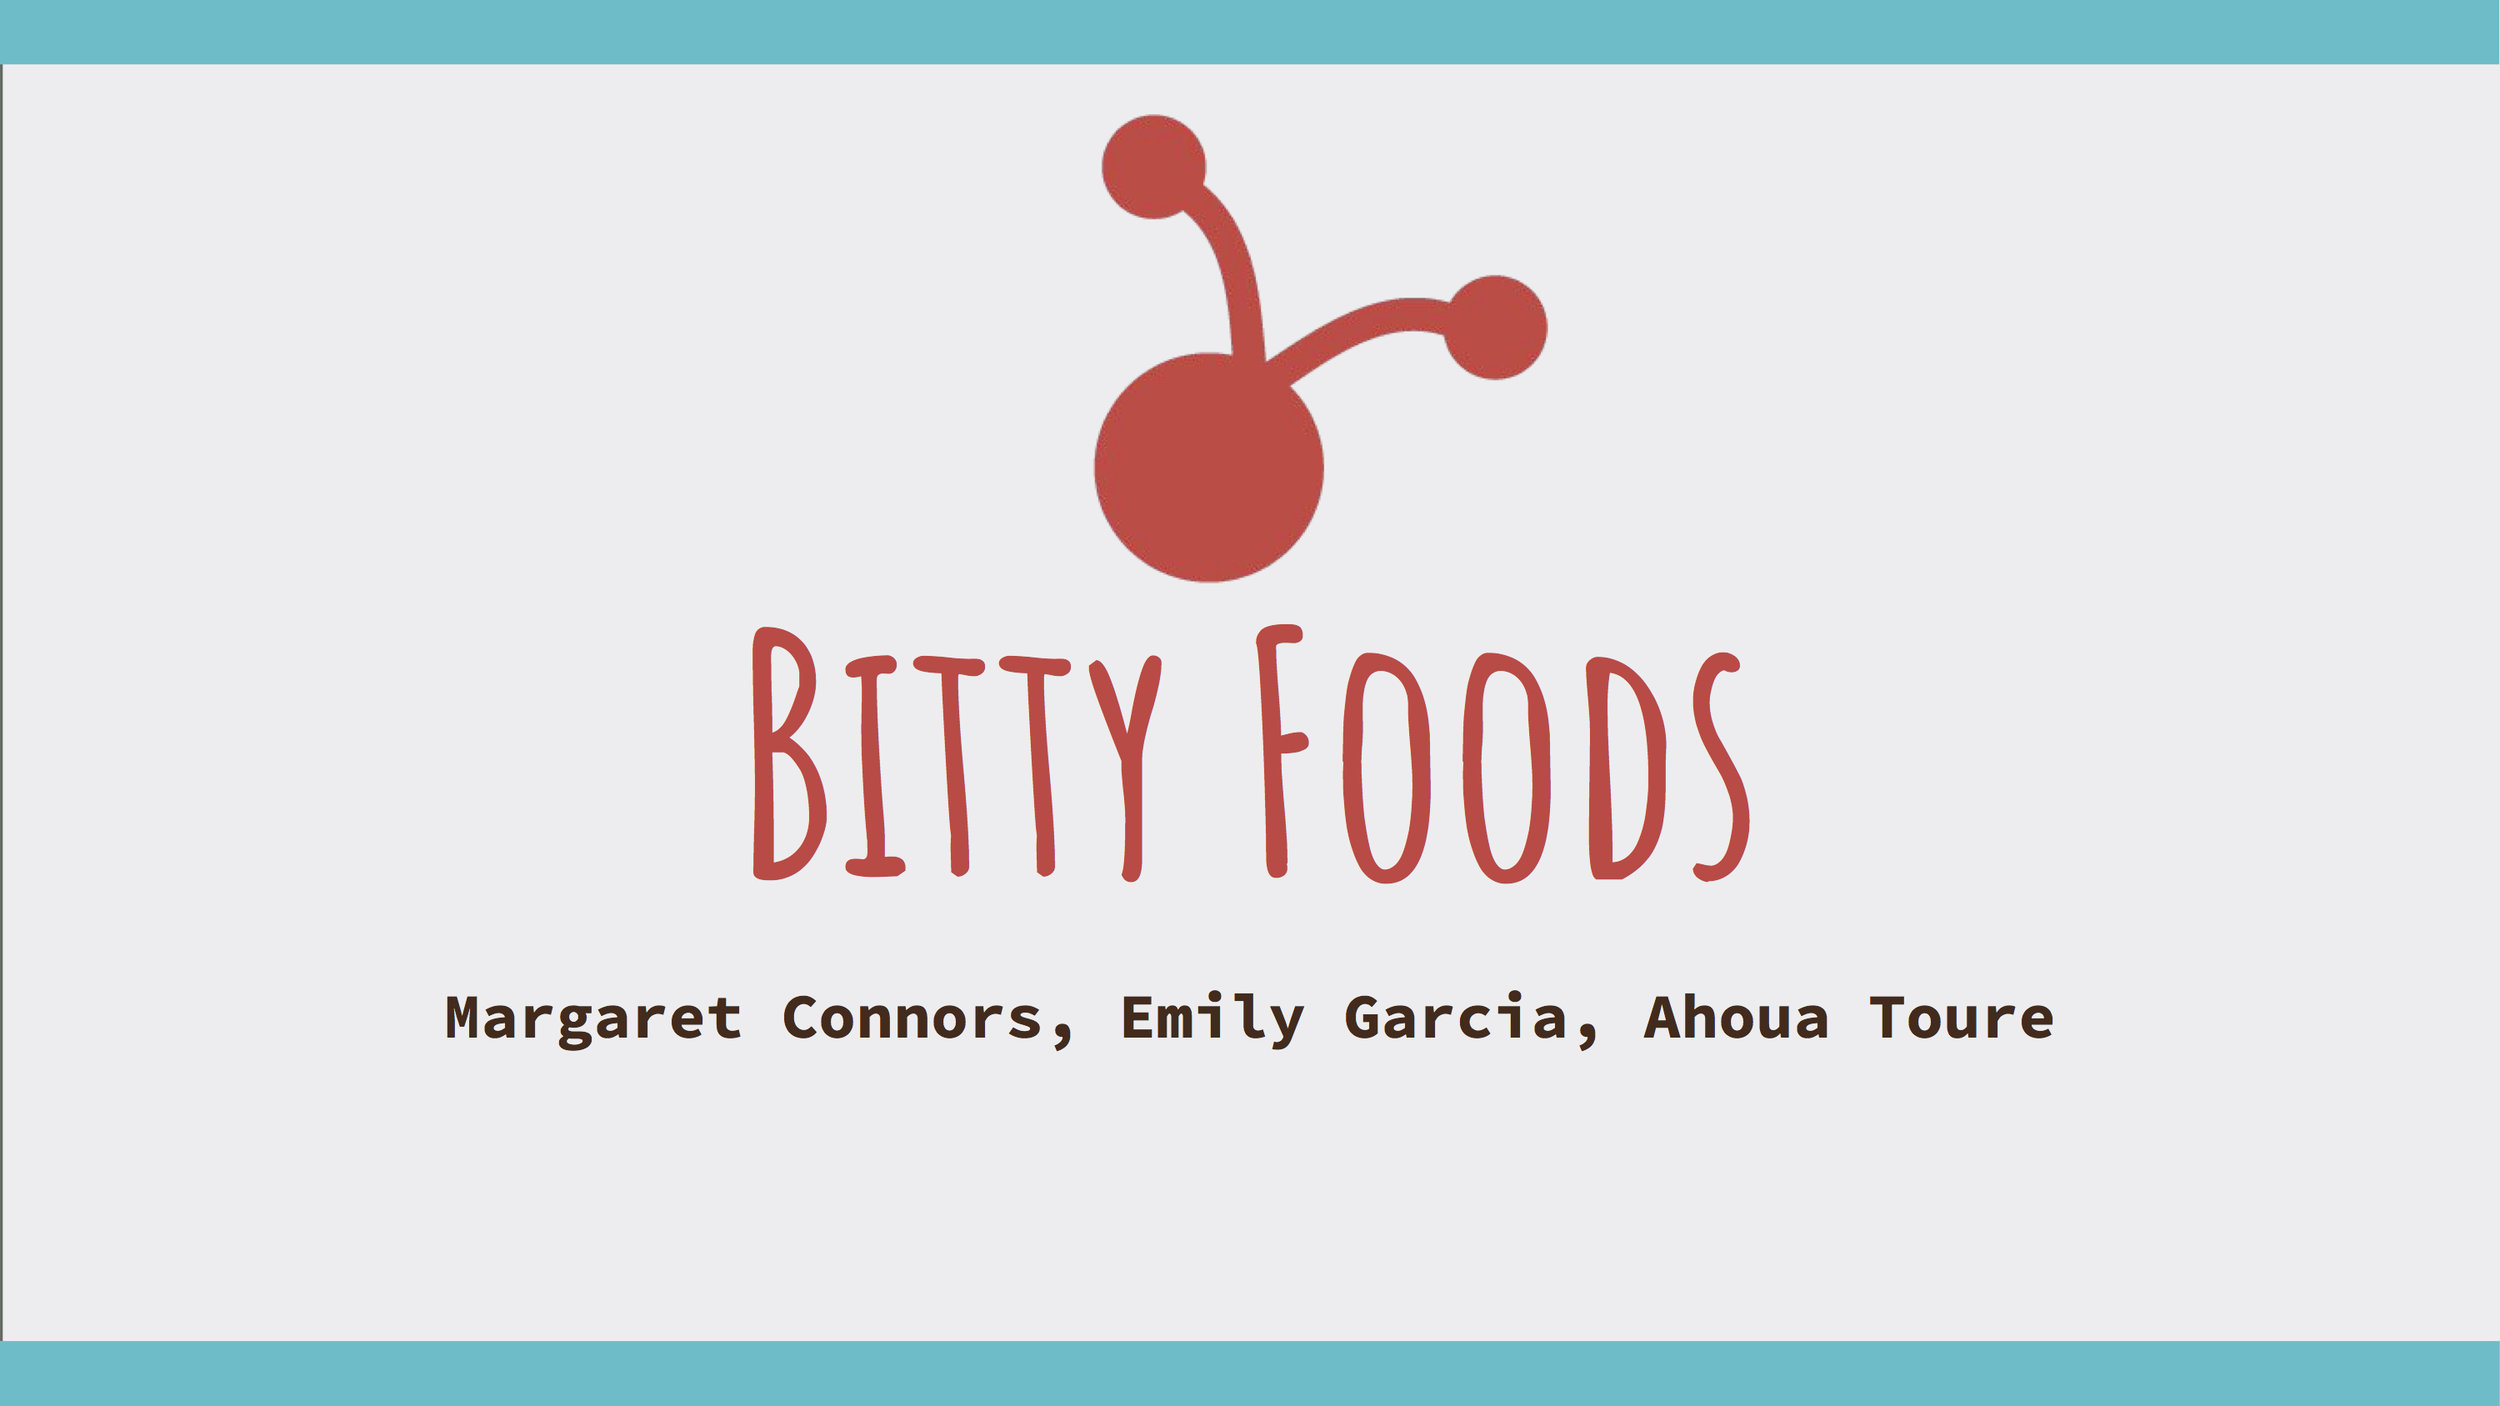 Connors, Garcia, Toure_Bitty Foods.jpg